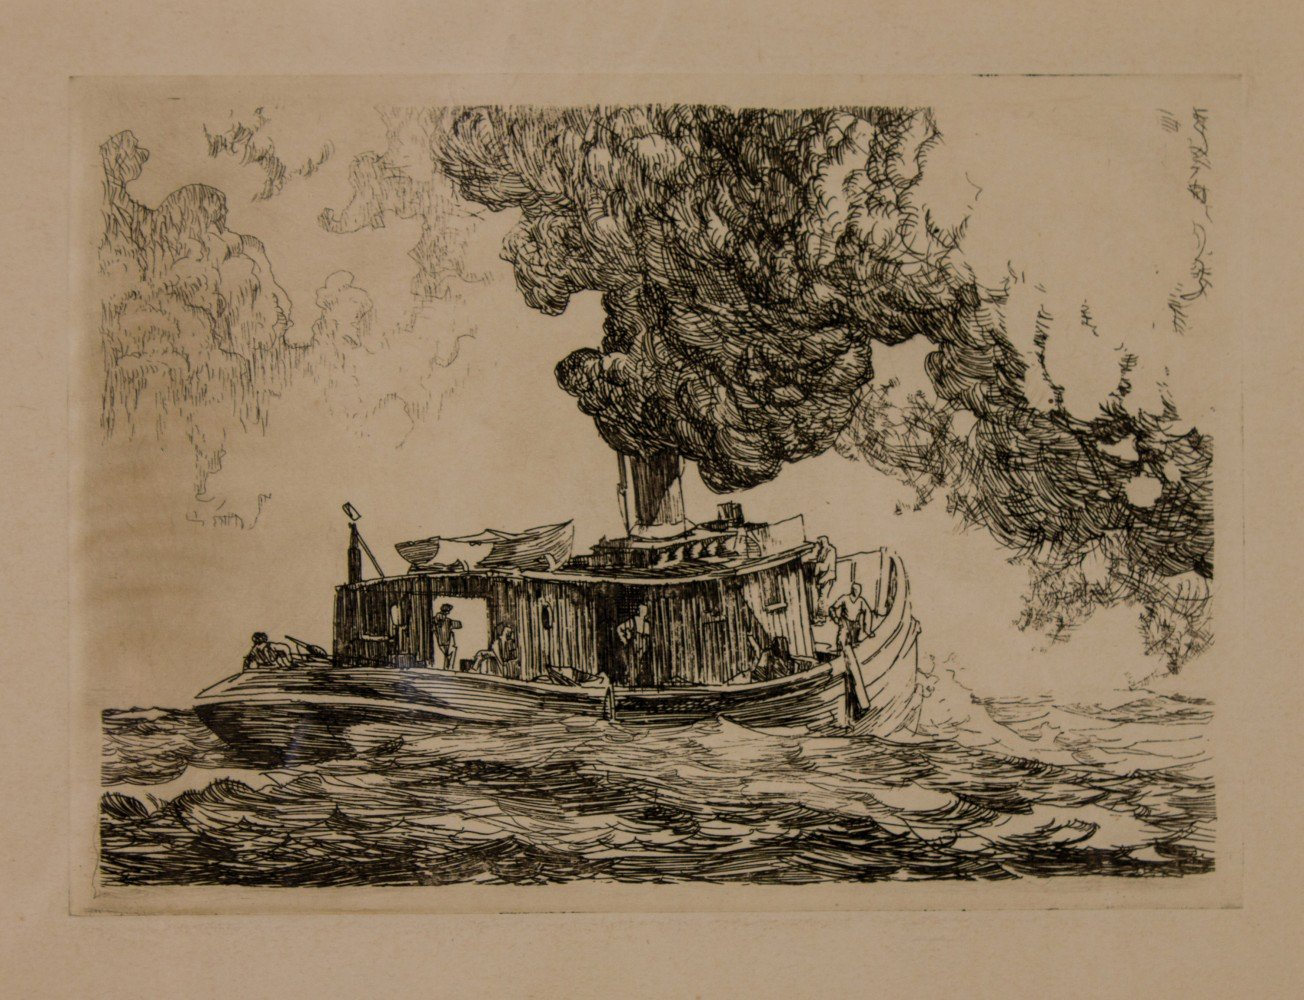 Fish Tug, Lake Erie by Frank Nelson Wilcox